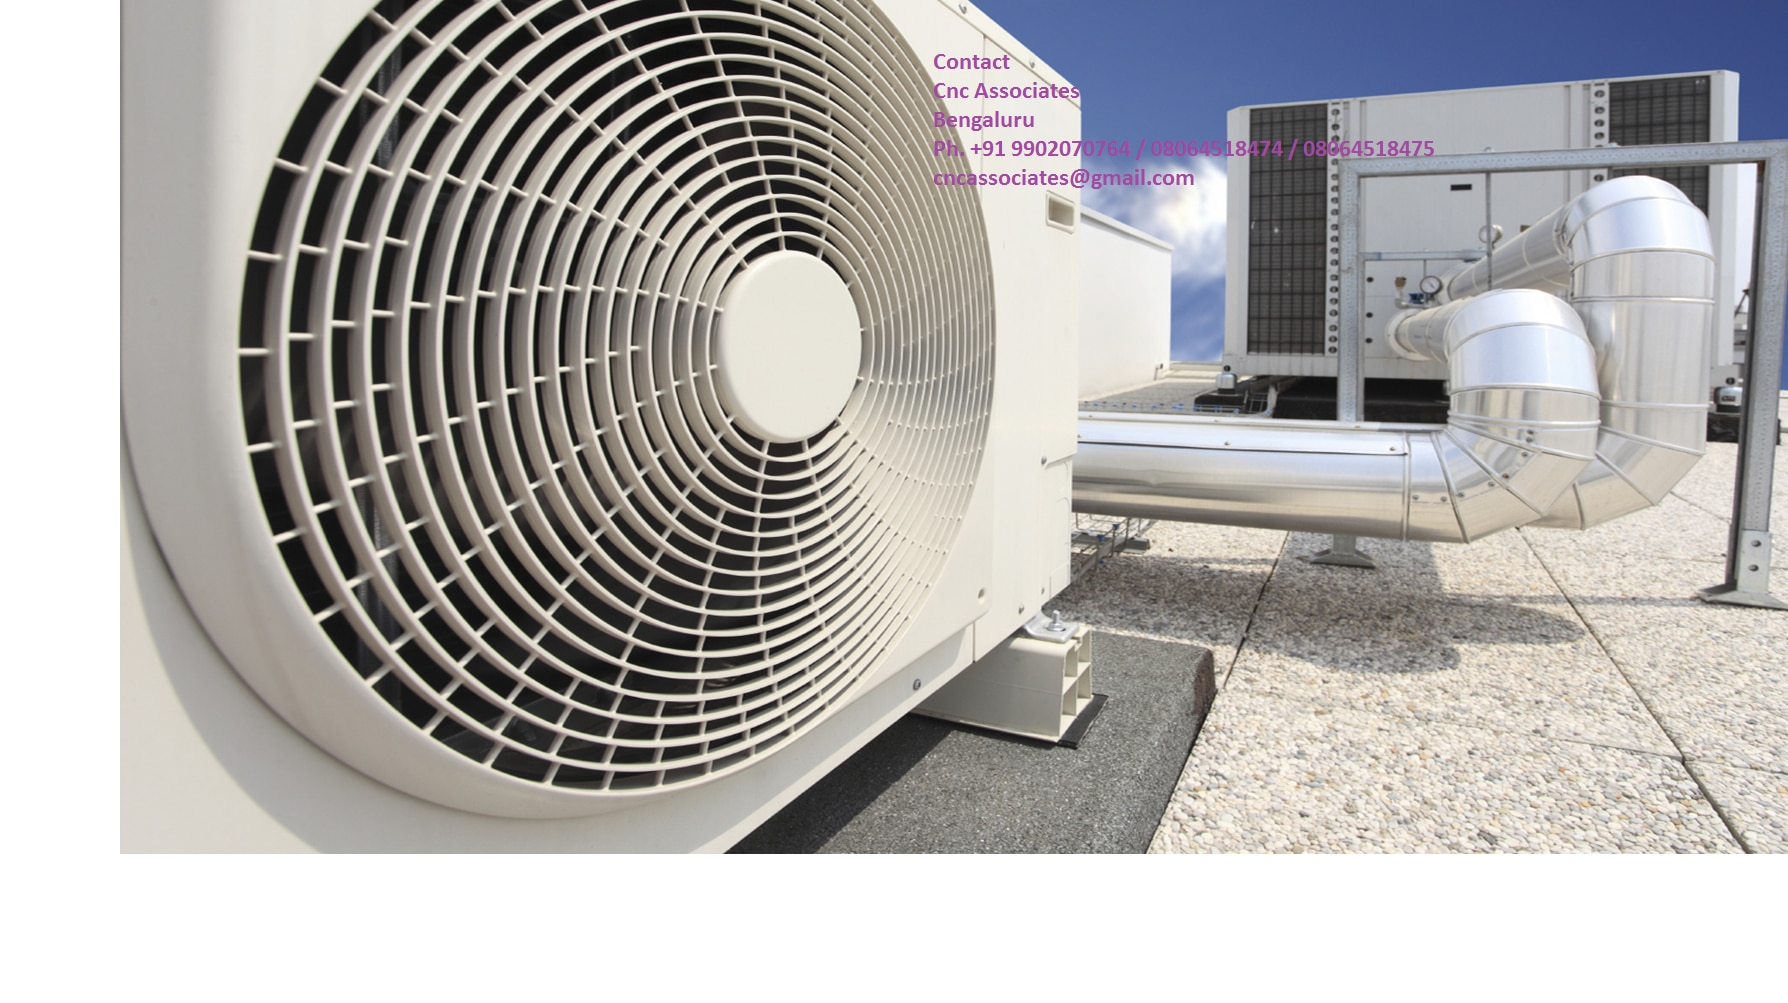 Air Conditioning Equipment  Manufacturers in Bangalore  Contact  Cnc Associates  Bengaluru  Ph. +91 9902070764 / 08064518474 / 08064518475  cncassociates@gmail.com  Fan Coil Units  • 2 or 4 pipe system models  • 3, 4, & 5 speed motor models  • 3, 4, & 6 row coil models  • High static pressure model options  • Electric heater, stainless steel drain pan, coated cabinet option  Air Handling Units  • 2 or 4 pipe system models  • 3, 4, & 5 speed motor models  • 3, 4, & 6 row coil models  • High static pressure model options  • Electric heater, stainless steel drain pan, coated cabinet options  Air Cooled Chillers  • Direct driven semi-hermetic industrial type  screw compressors  • High efficiency low noise fans  • Advanced microprocessor for complete  management  • High ambient operation upto 52oC  Water Cooled Chillers  • Direct driven semi-hermetic industrial type screw compressors  • Direct expansion shell and tube or flooded type evaporator option  • Advanced microprocessor for complete management  Decorative & Ducted Split Units  • Wall, universal, cassette and freestanding models  • Cooling only or Heat Pump options  • Top & Side discharge outdoor units  • High ambient operation upto 52oC  Computer Room AC Units (CCU units)  • Fully automatic operation of the unit in cooling, heating, humidifying and dehumidifying modes  • Top and Bottom discharge options  • Air cooled and water cooled condenser options  • Full temperature and humidity control all year round  Standard Package Units / 100% Full Fresh Air Package Units  • Specially designed for High ambient temperatures and humid market requirements  • Scroll compressors for maximum efficiency and low power consumption  • Many options such as bag filters, electric heaters, mixing box, return fan, economizer, humidifier and double skin evaporators  VRF Systems  • Different indoor units including wall mounted, floor standing, and ceiling mounted cassette  • Centralized control able to control upto 64 indoor units, with the connection length able to reach 1, 200m  • Full BMS integration facility   Contact  Cnc Associates  Bengaluru  Ph. +91 9902070764 / 08064518474 / 08064518475  cncassociates@gmail.com